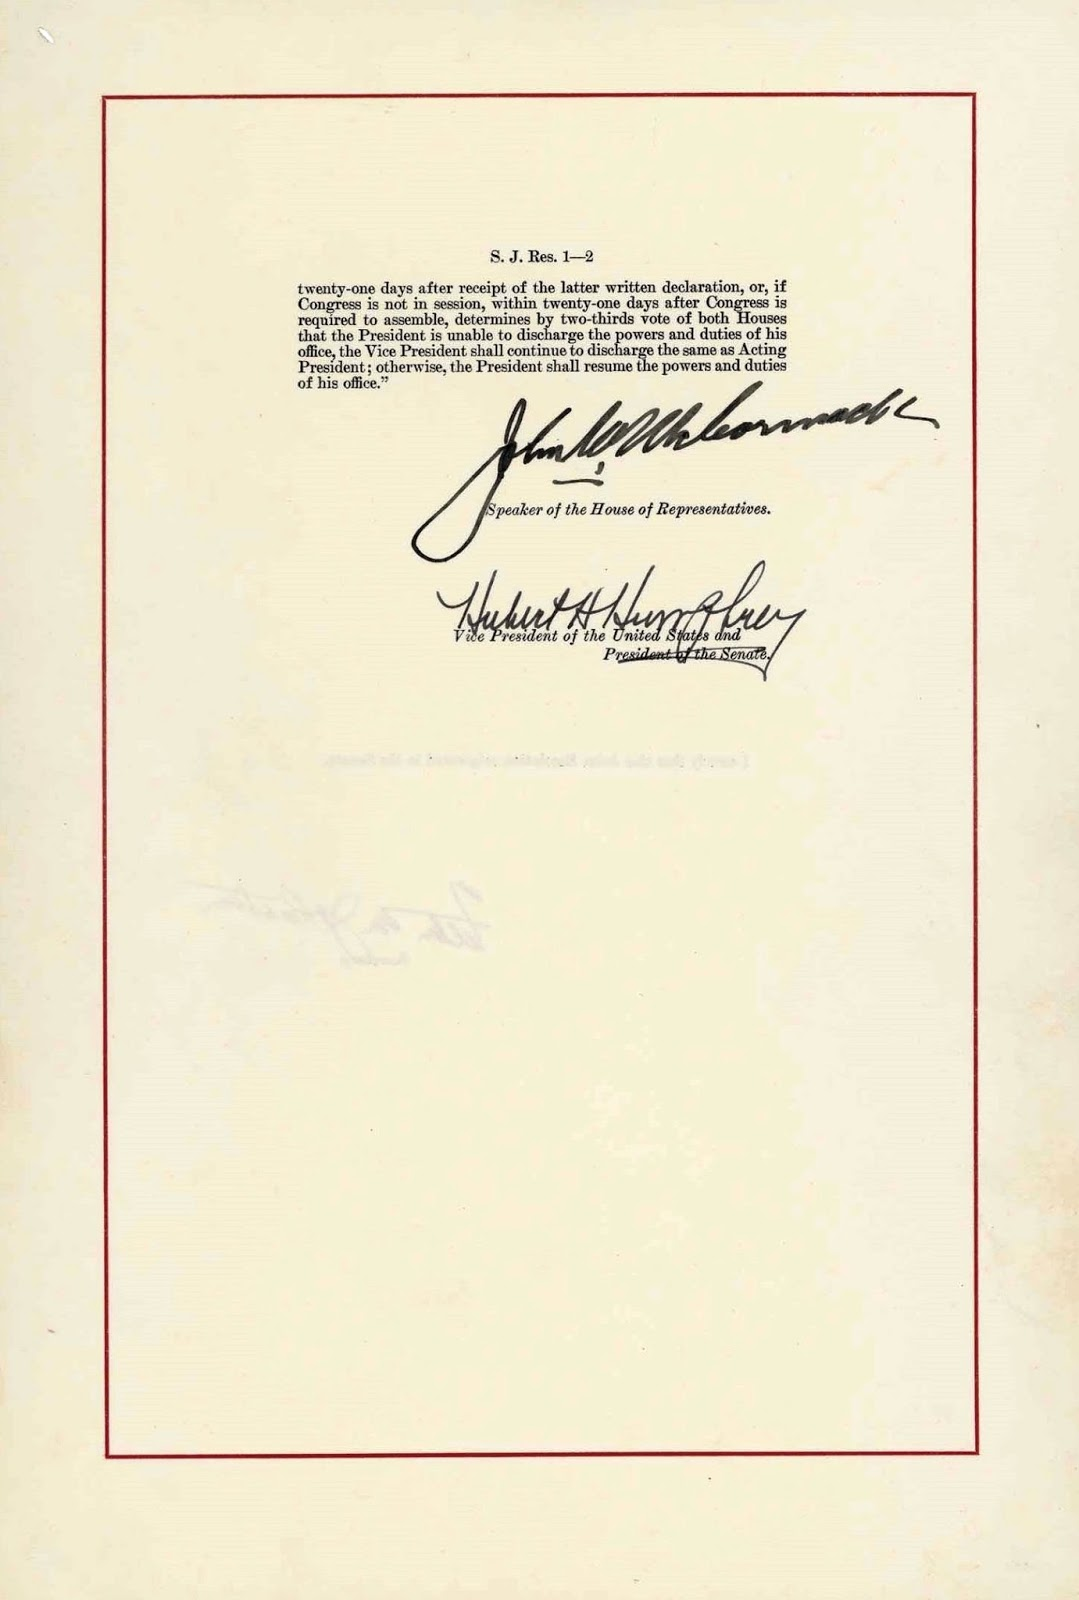 United States Constitution and Citizenship Day: 25th Amendment